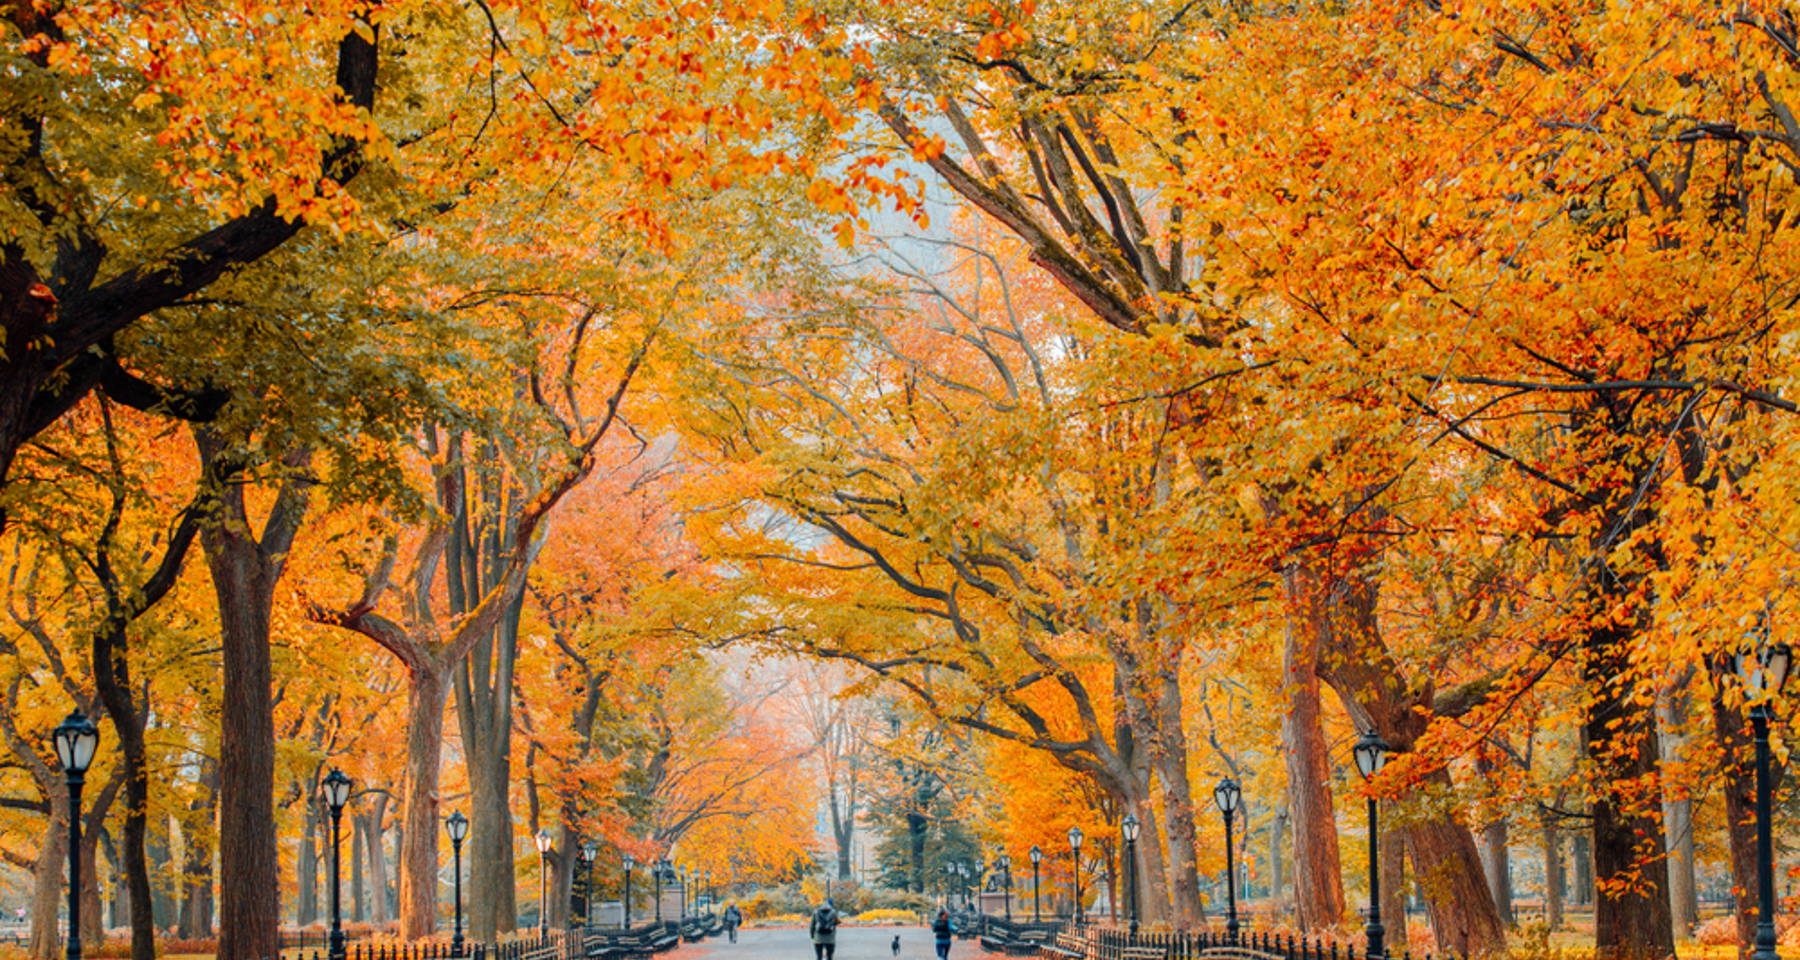 Vivaldi's The Four Seasons: Fall - Celebration of first day of fall